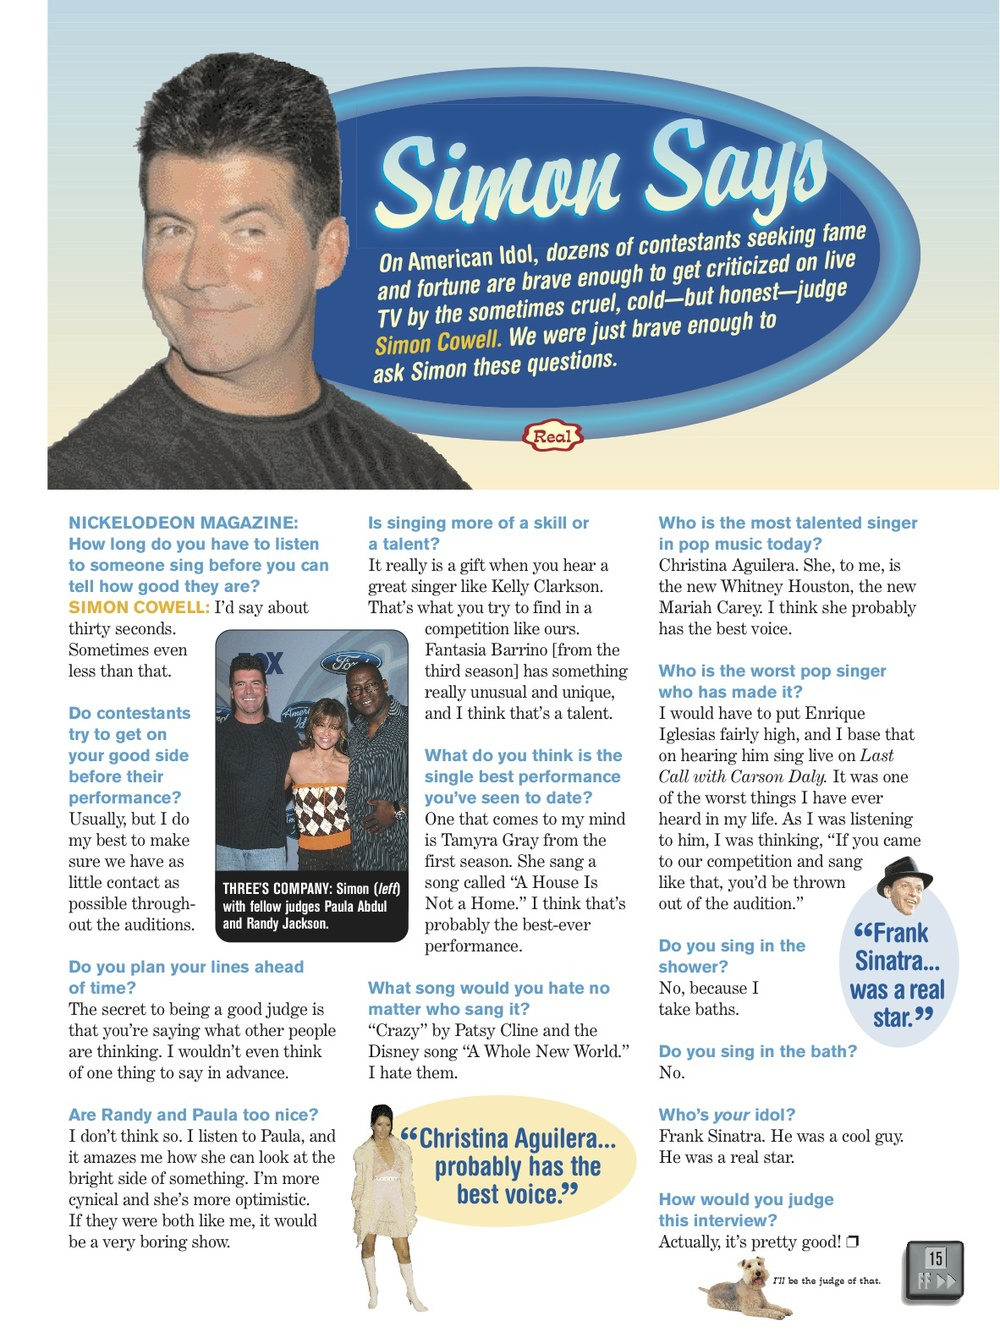 NickelodeonMagazine_Simon Cowell interview.jpg